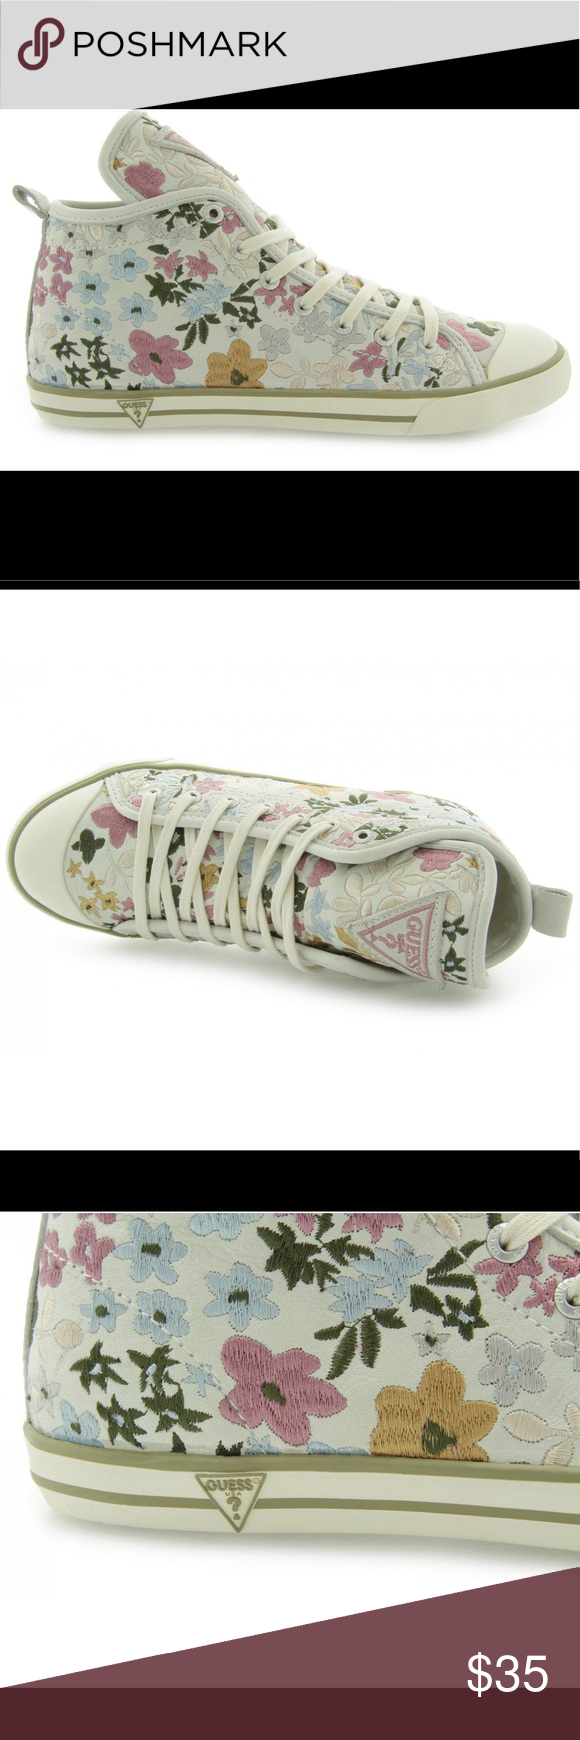 💐RARE Guess Flower Sneakers🌸 | Guess